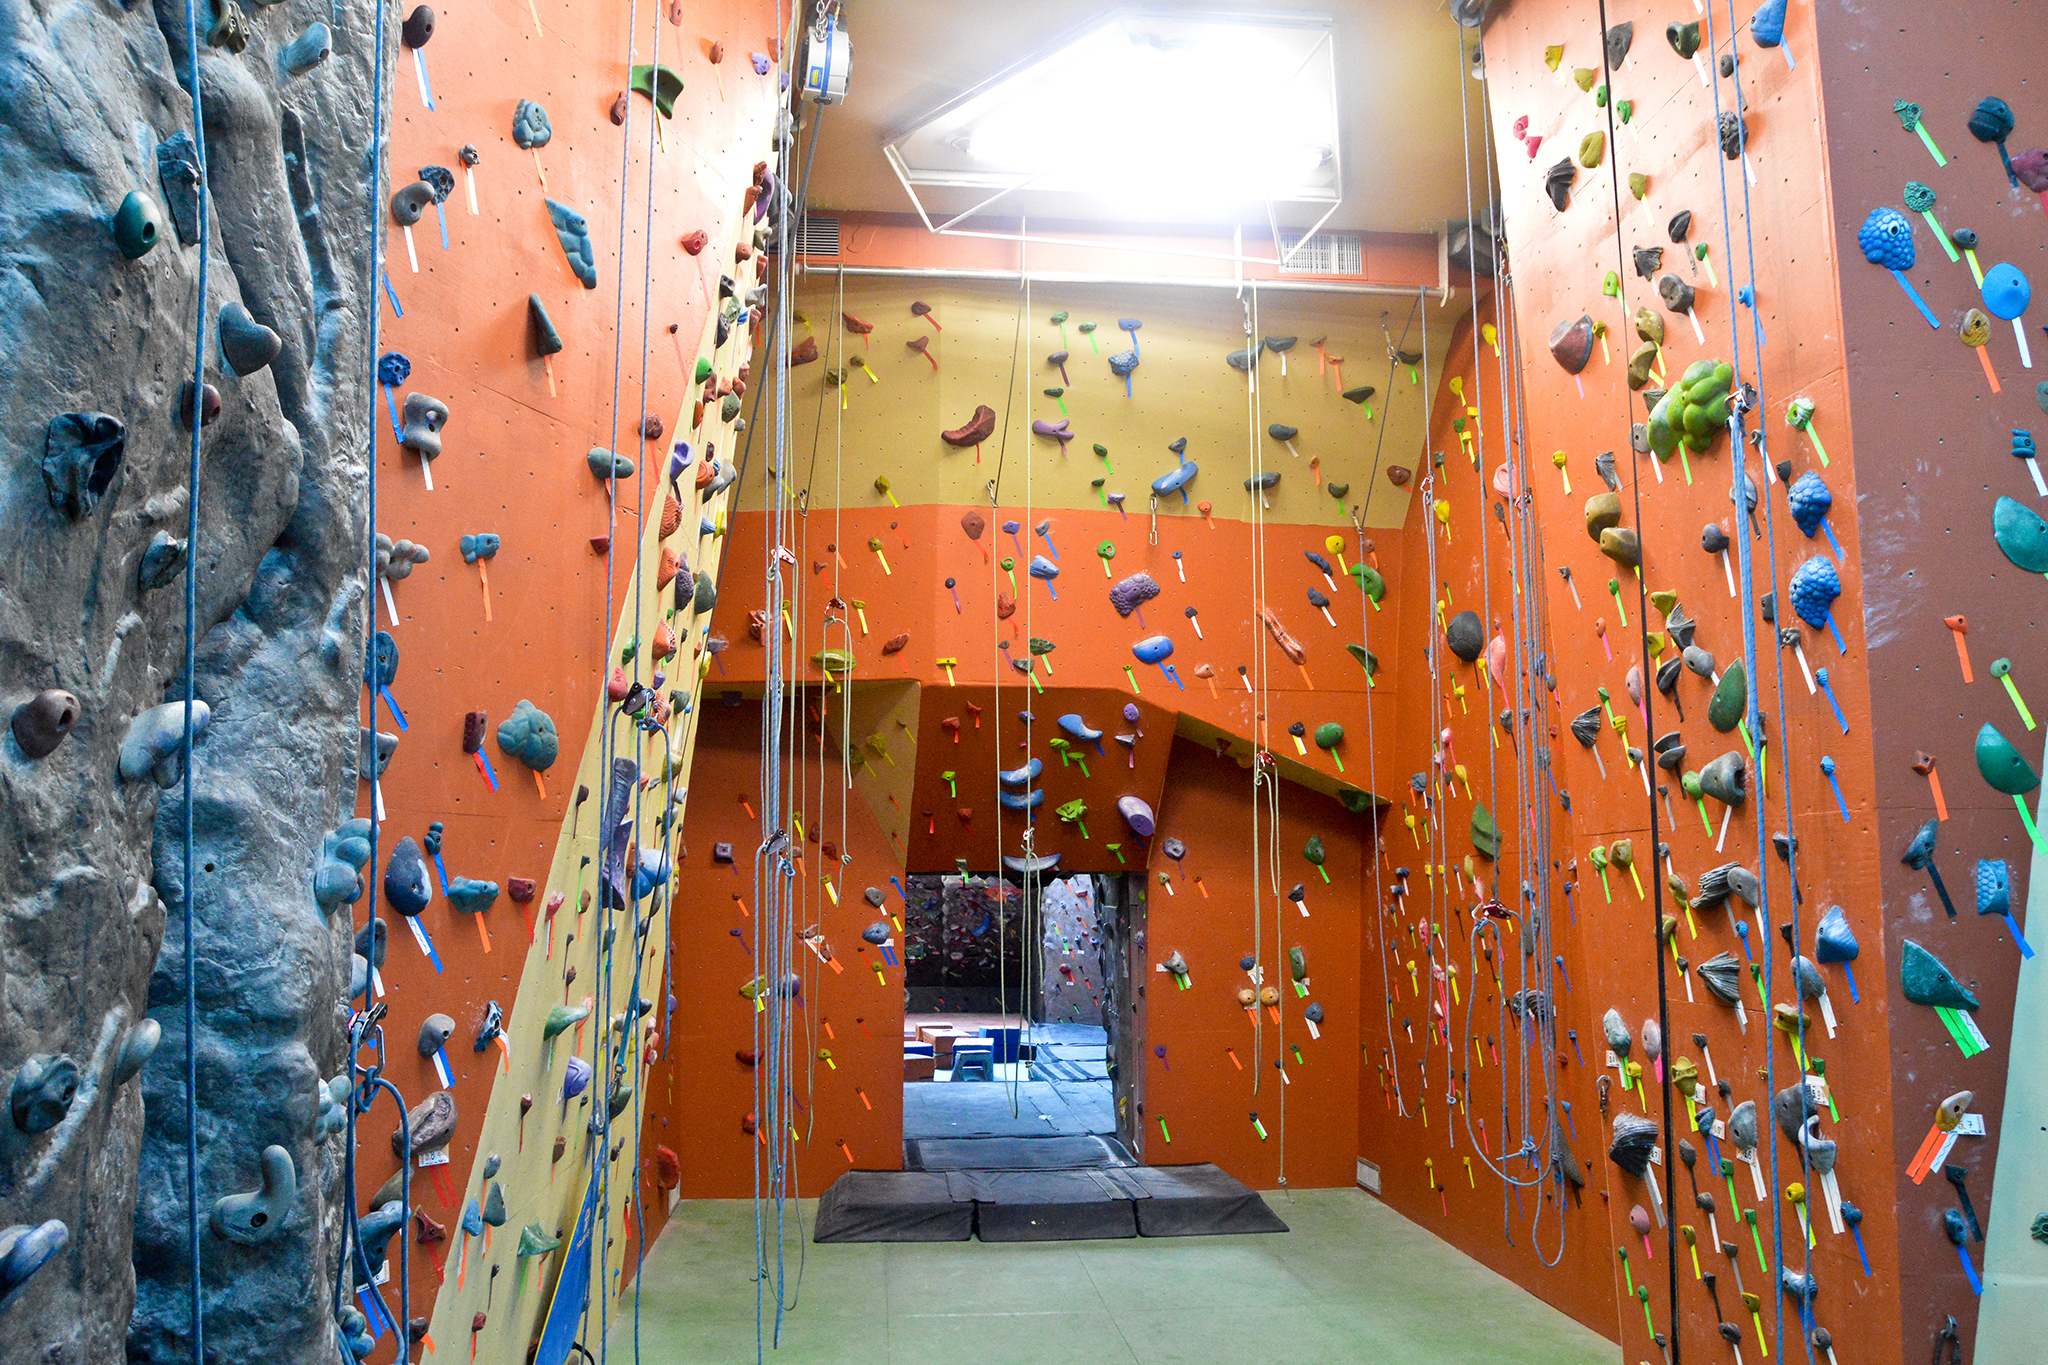 Best places to go outdoor or indoor rock climbing in nyc for Best places to go in nyc at night